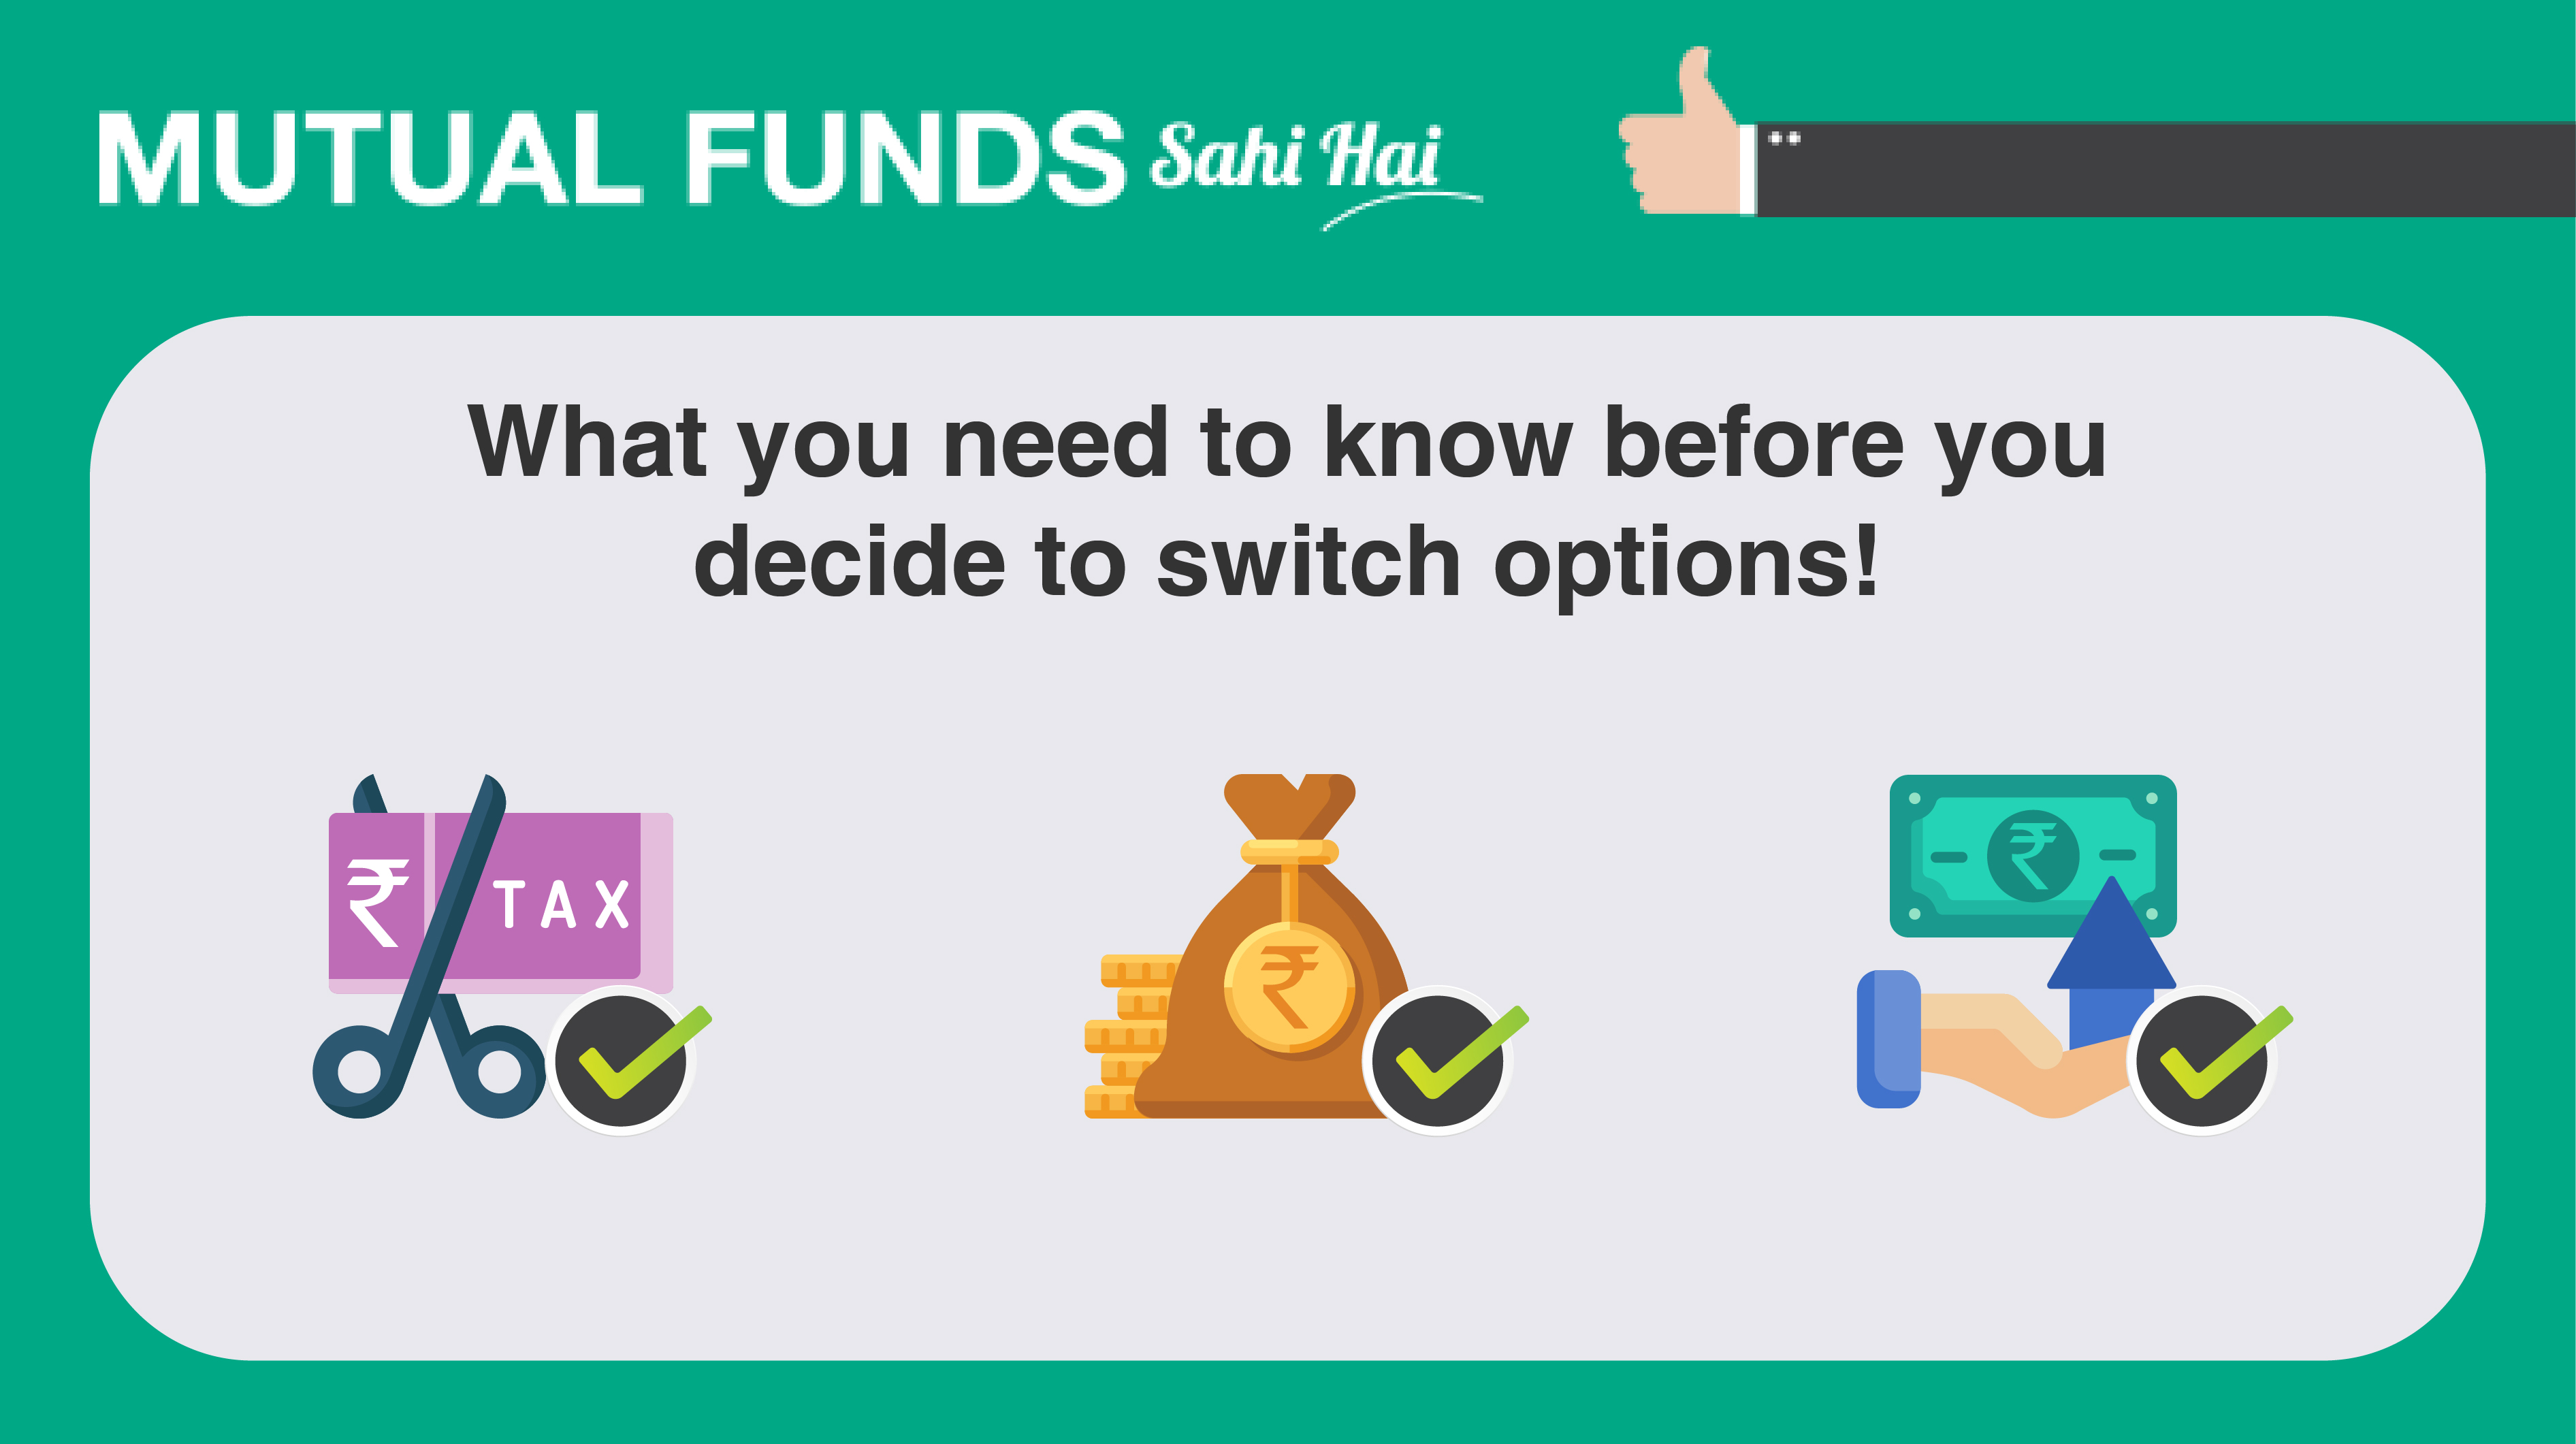 What should investors consider while switching from Dividend to Growth option?